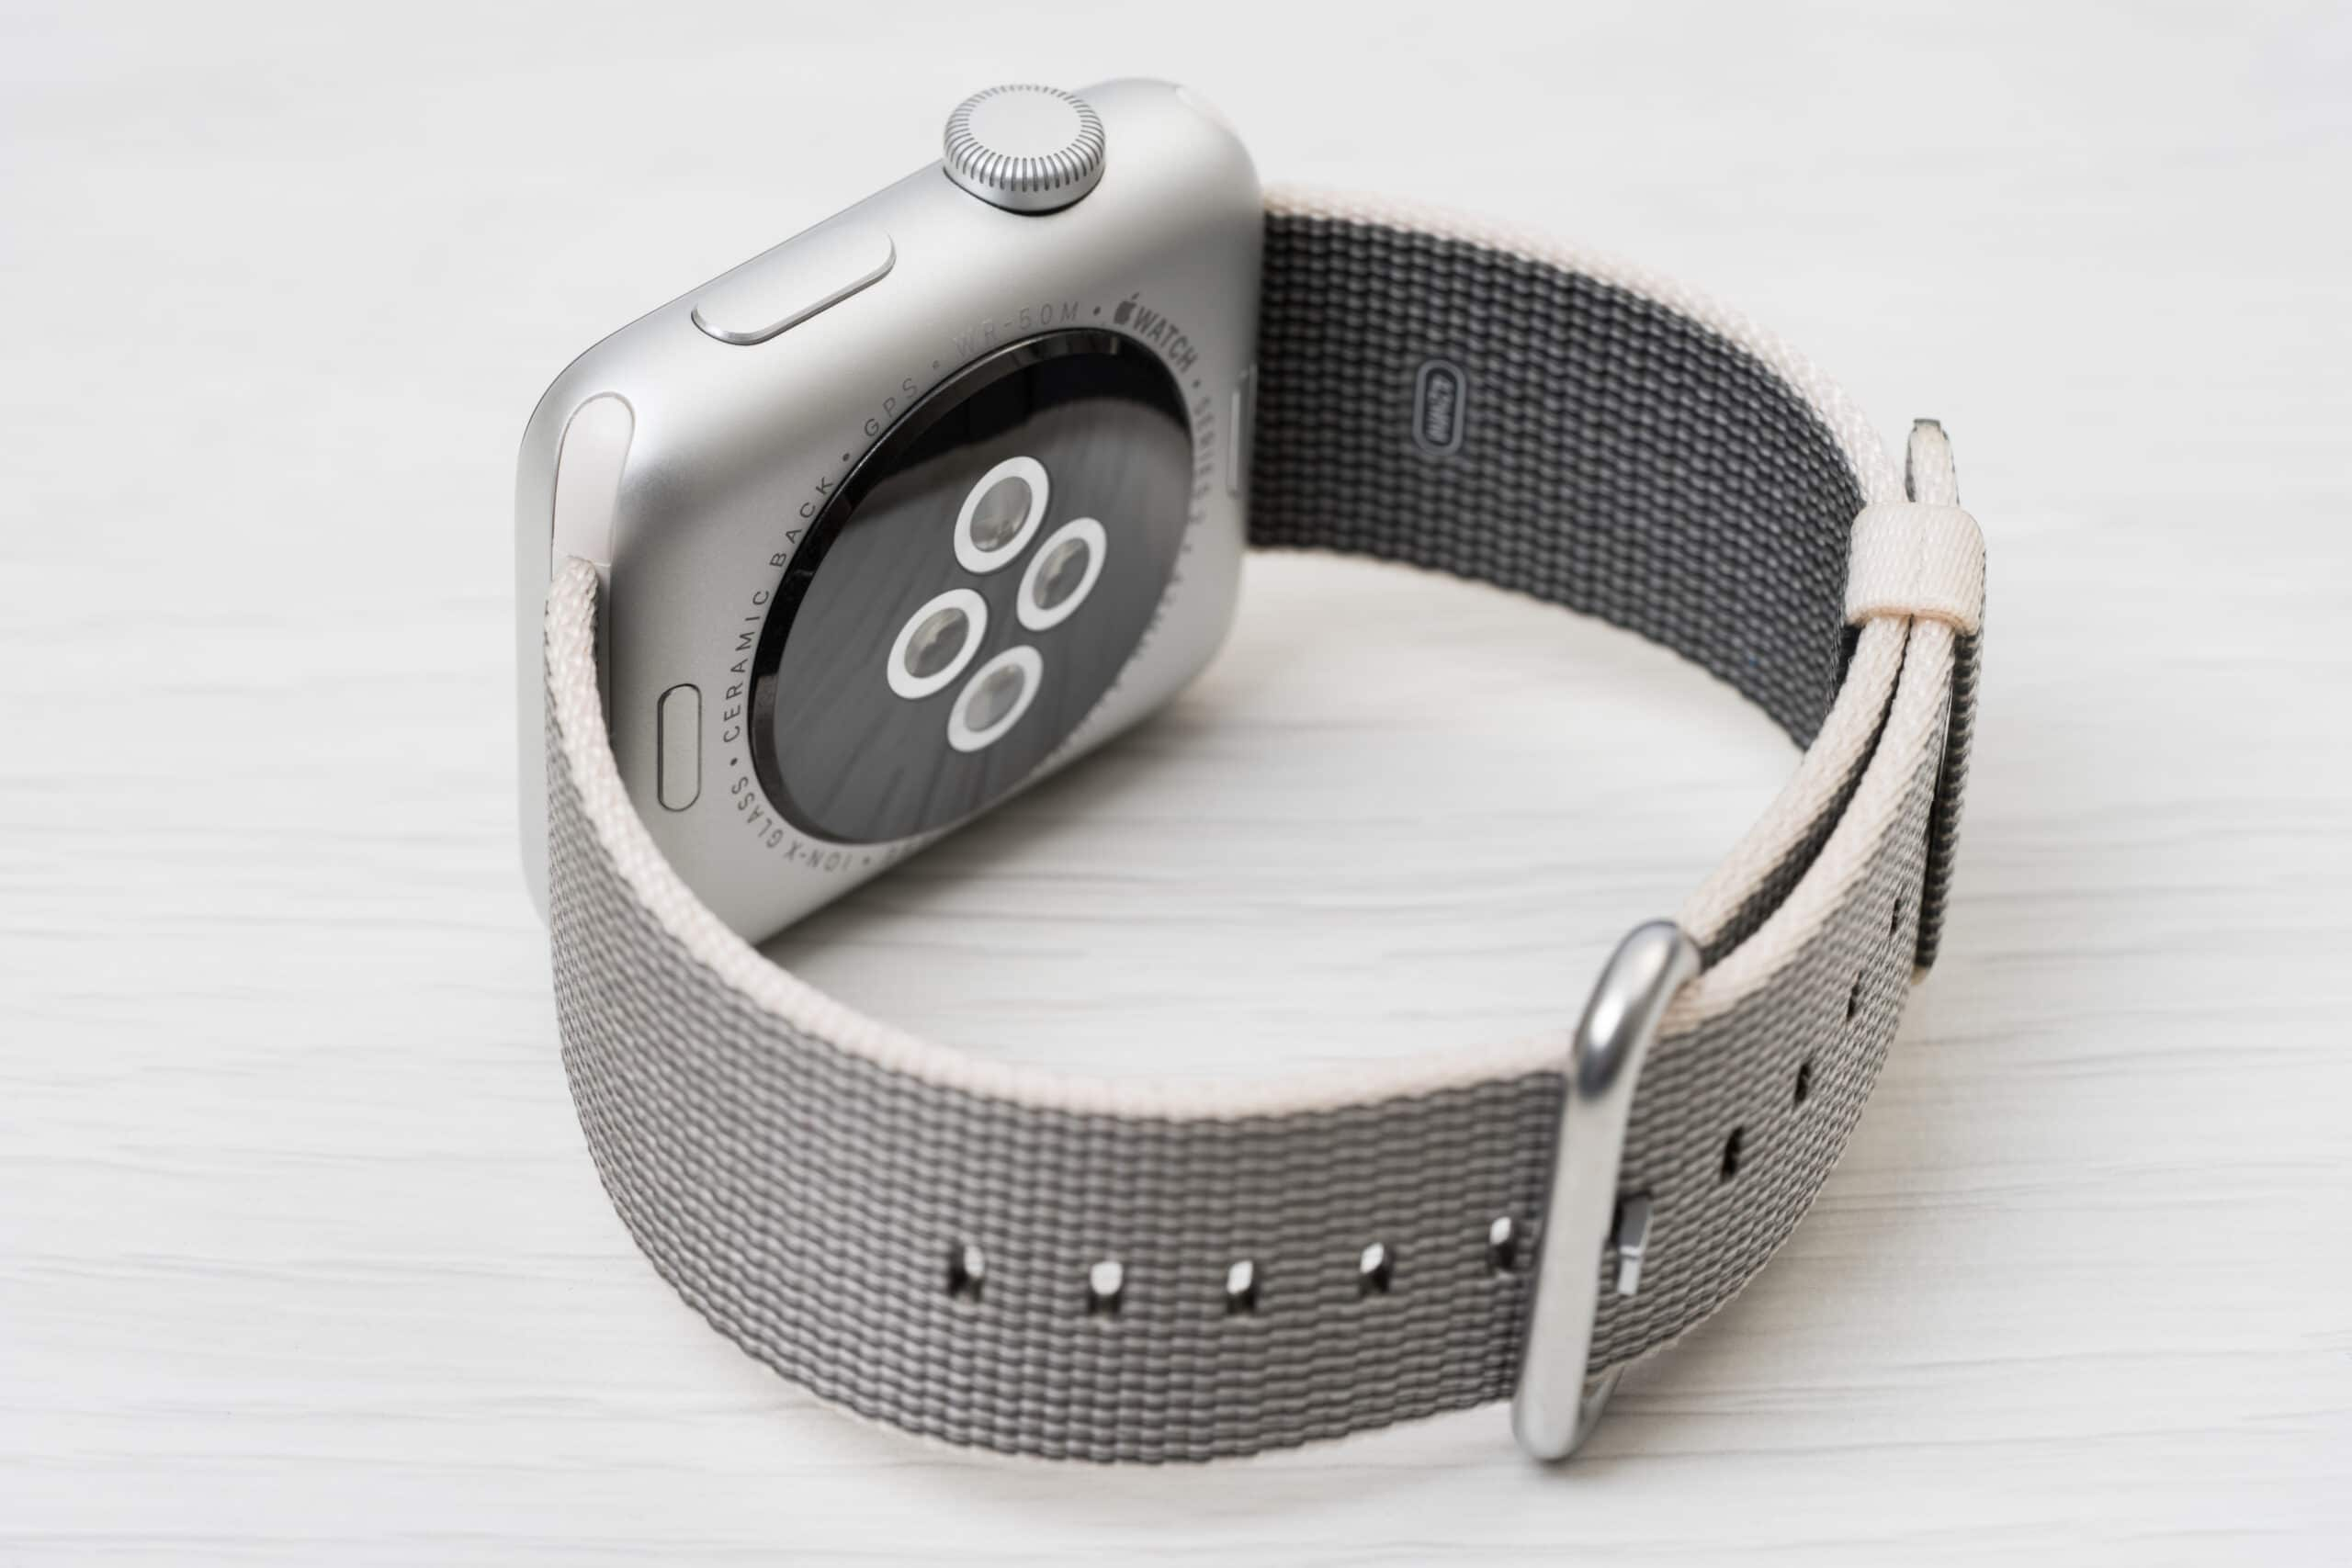 Sensores traseiros do Apple Watch